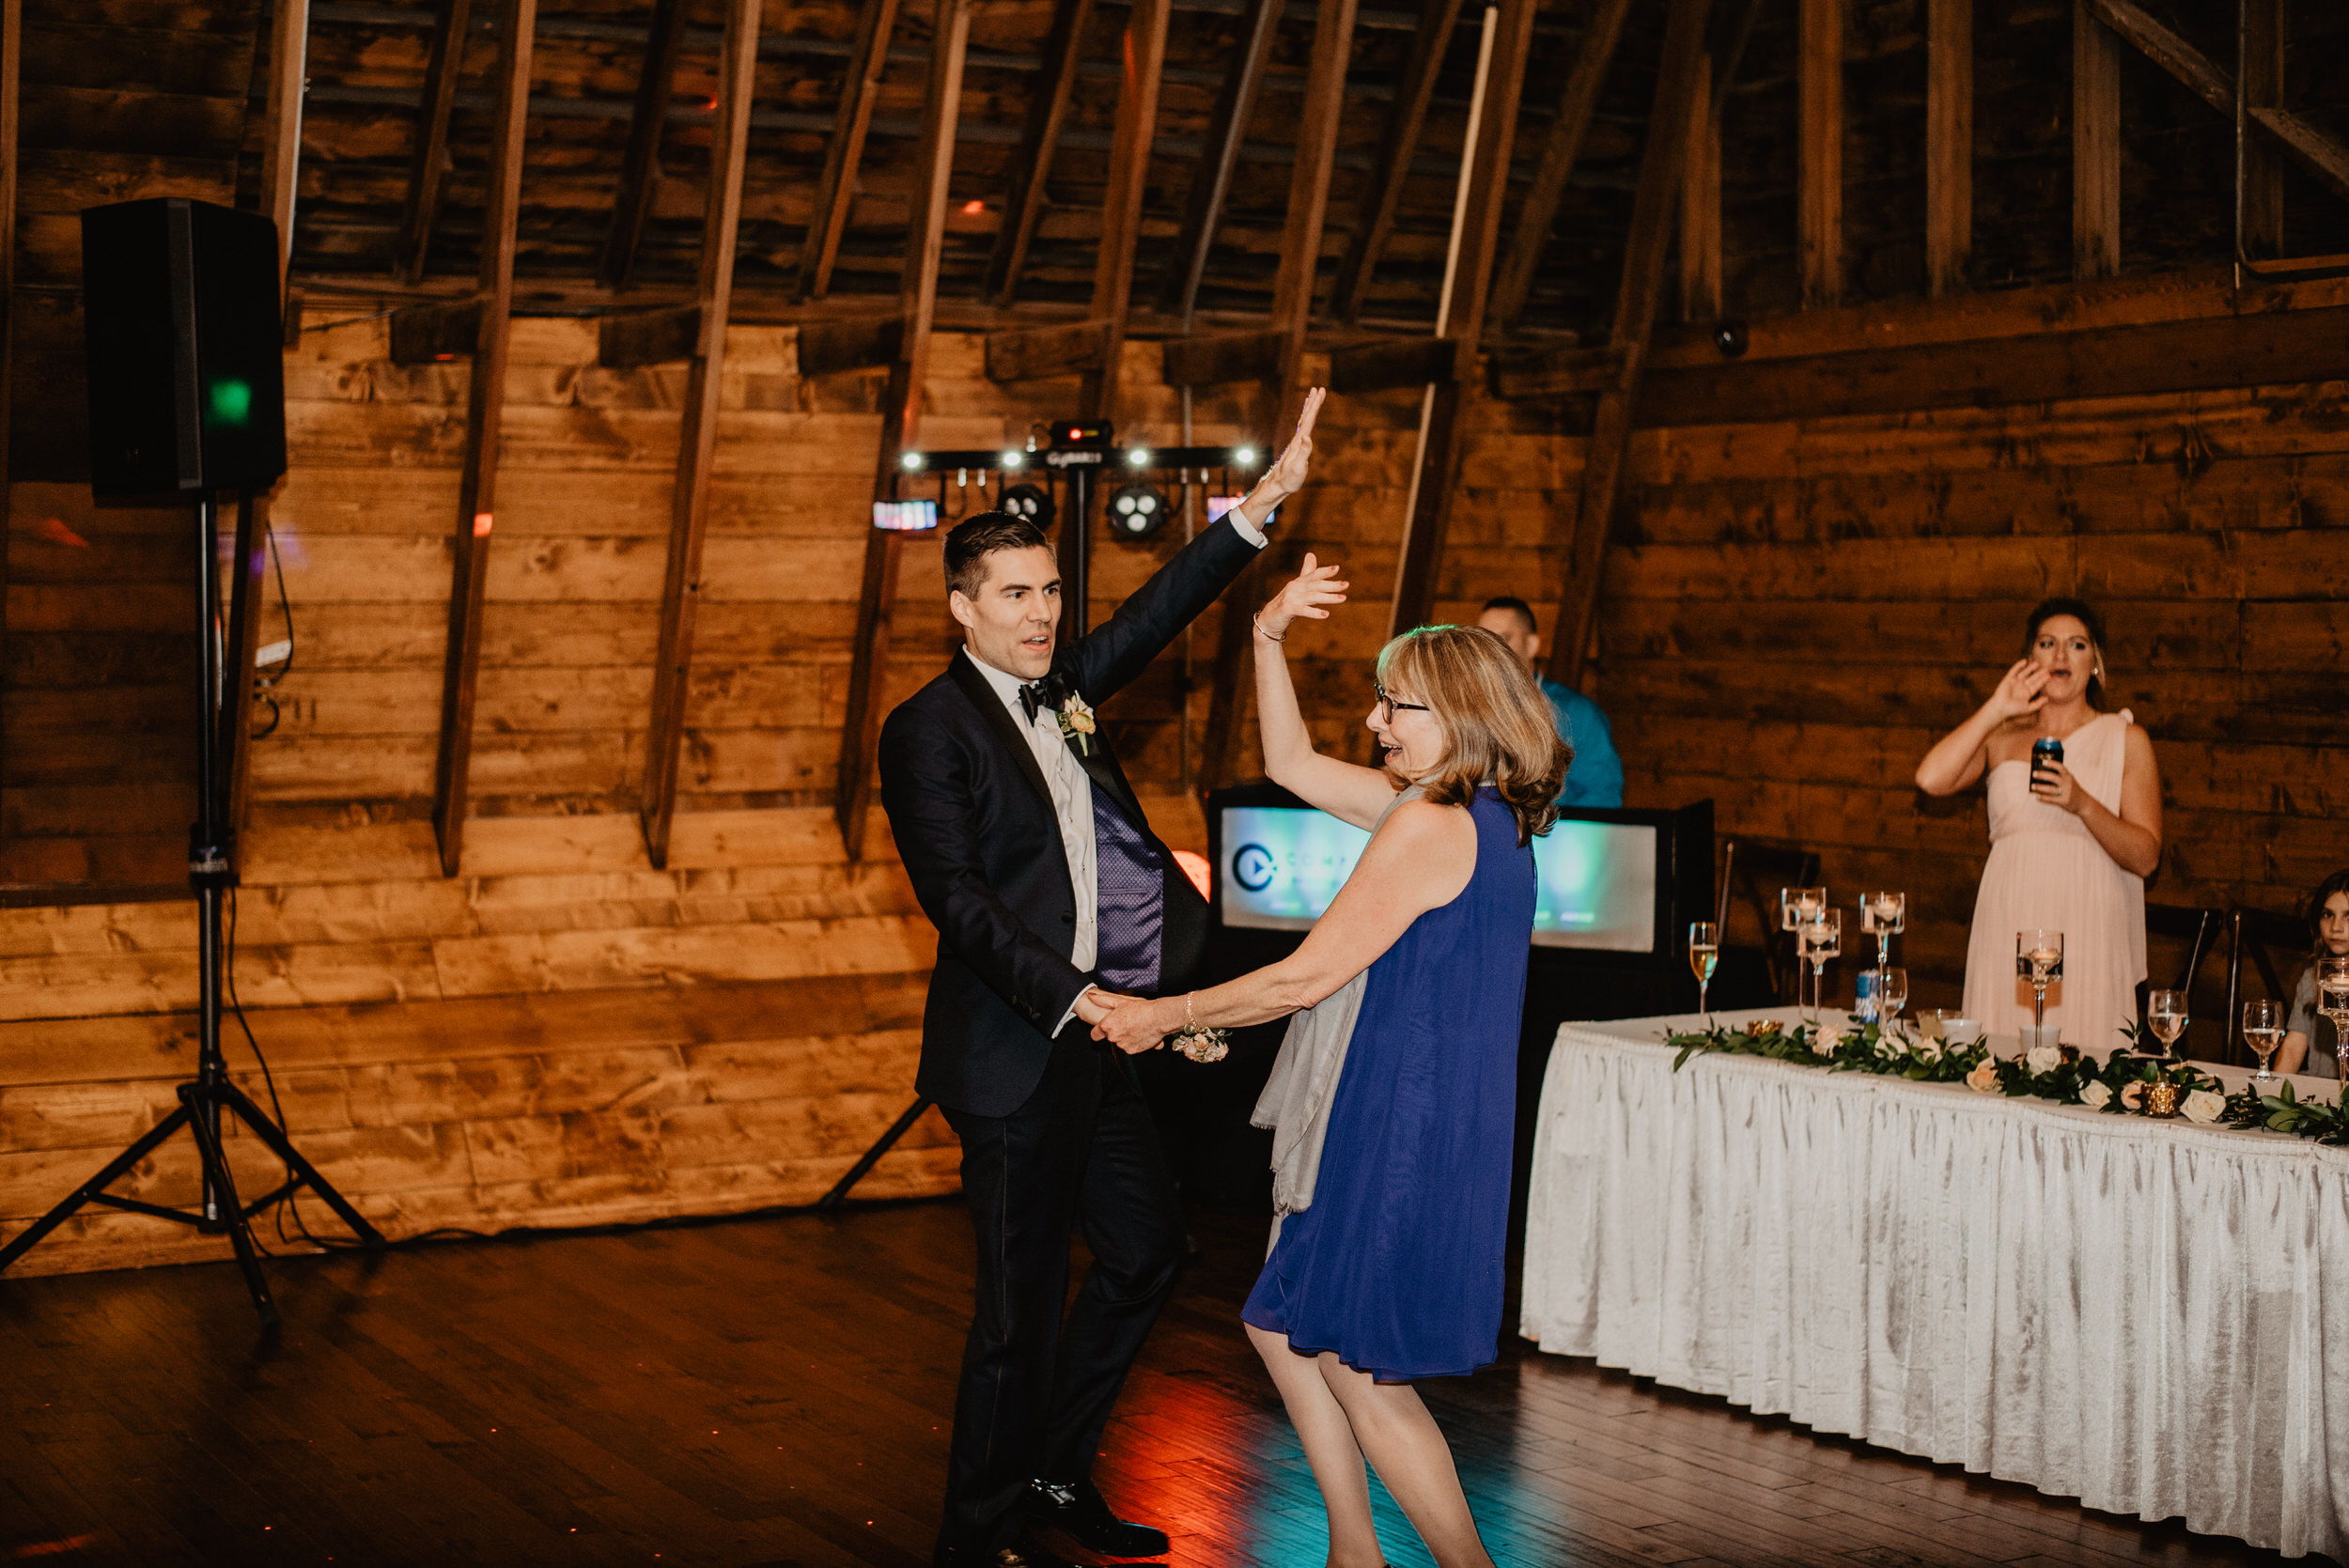 The Barn at the Ackerhurst Dairy Farm Omaha Nebraska Wedding Kaylie Sirek Photography128.jpg